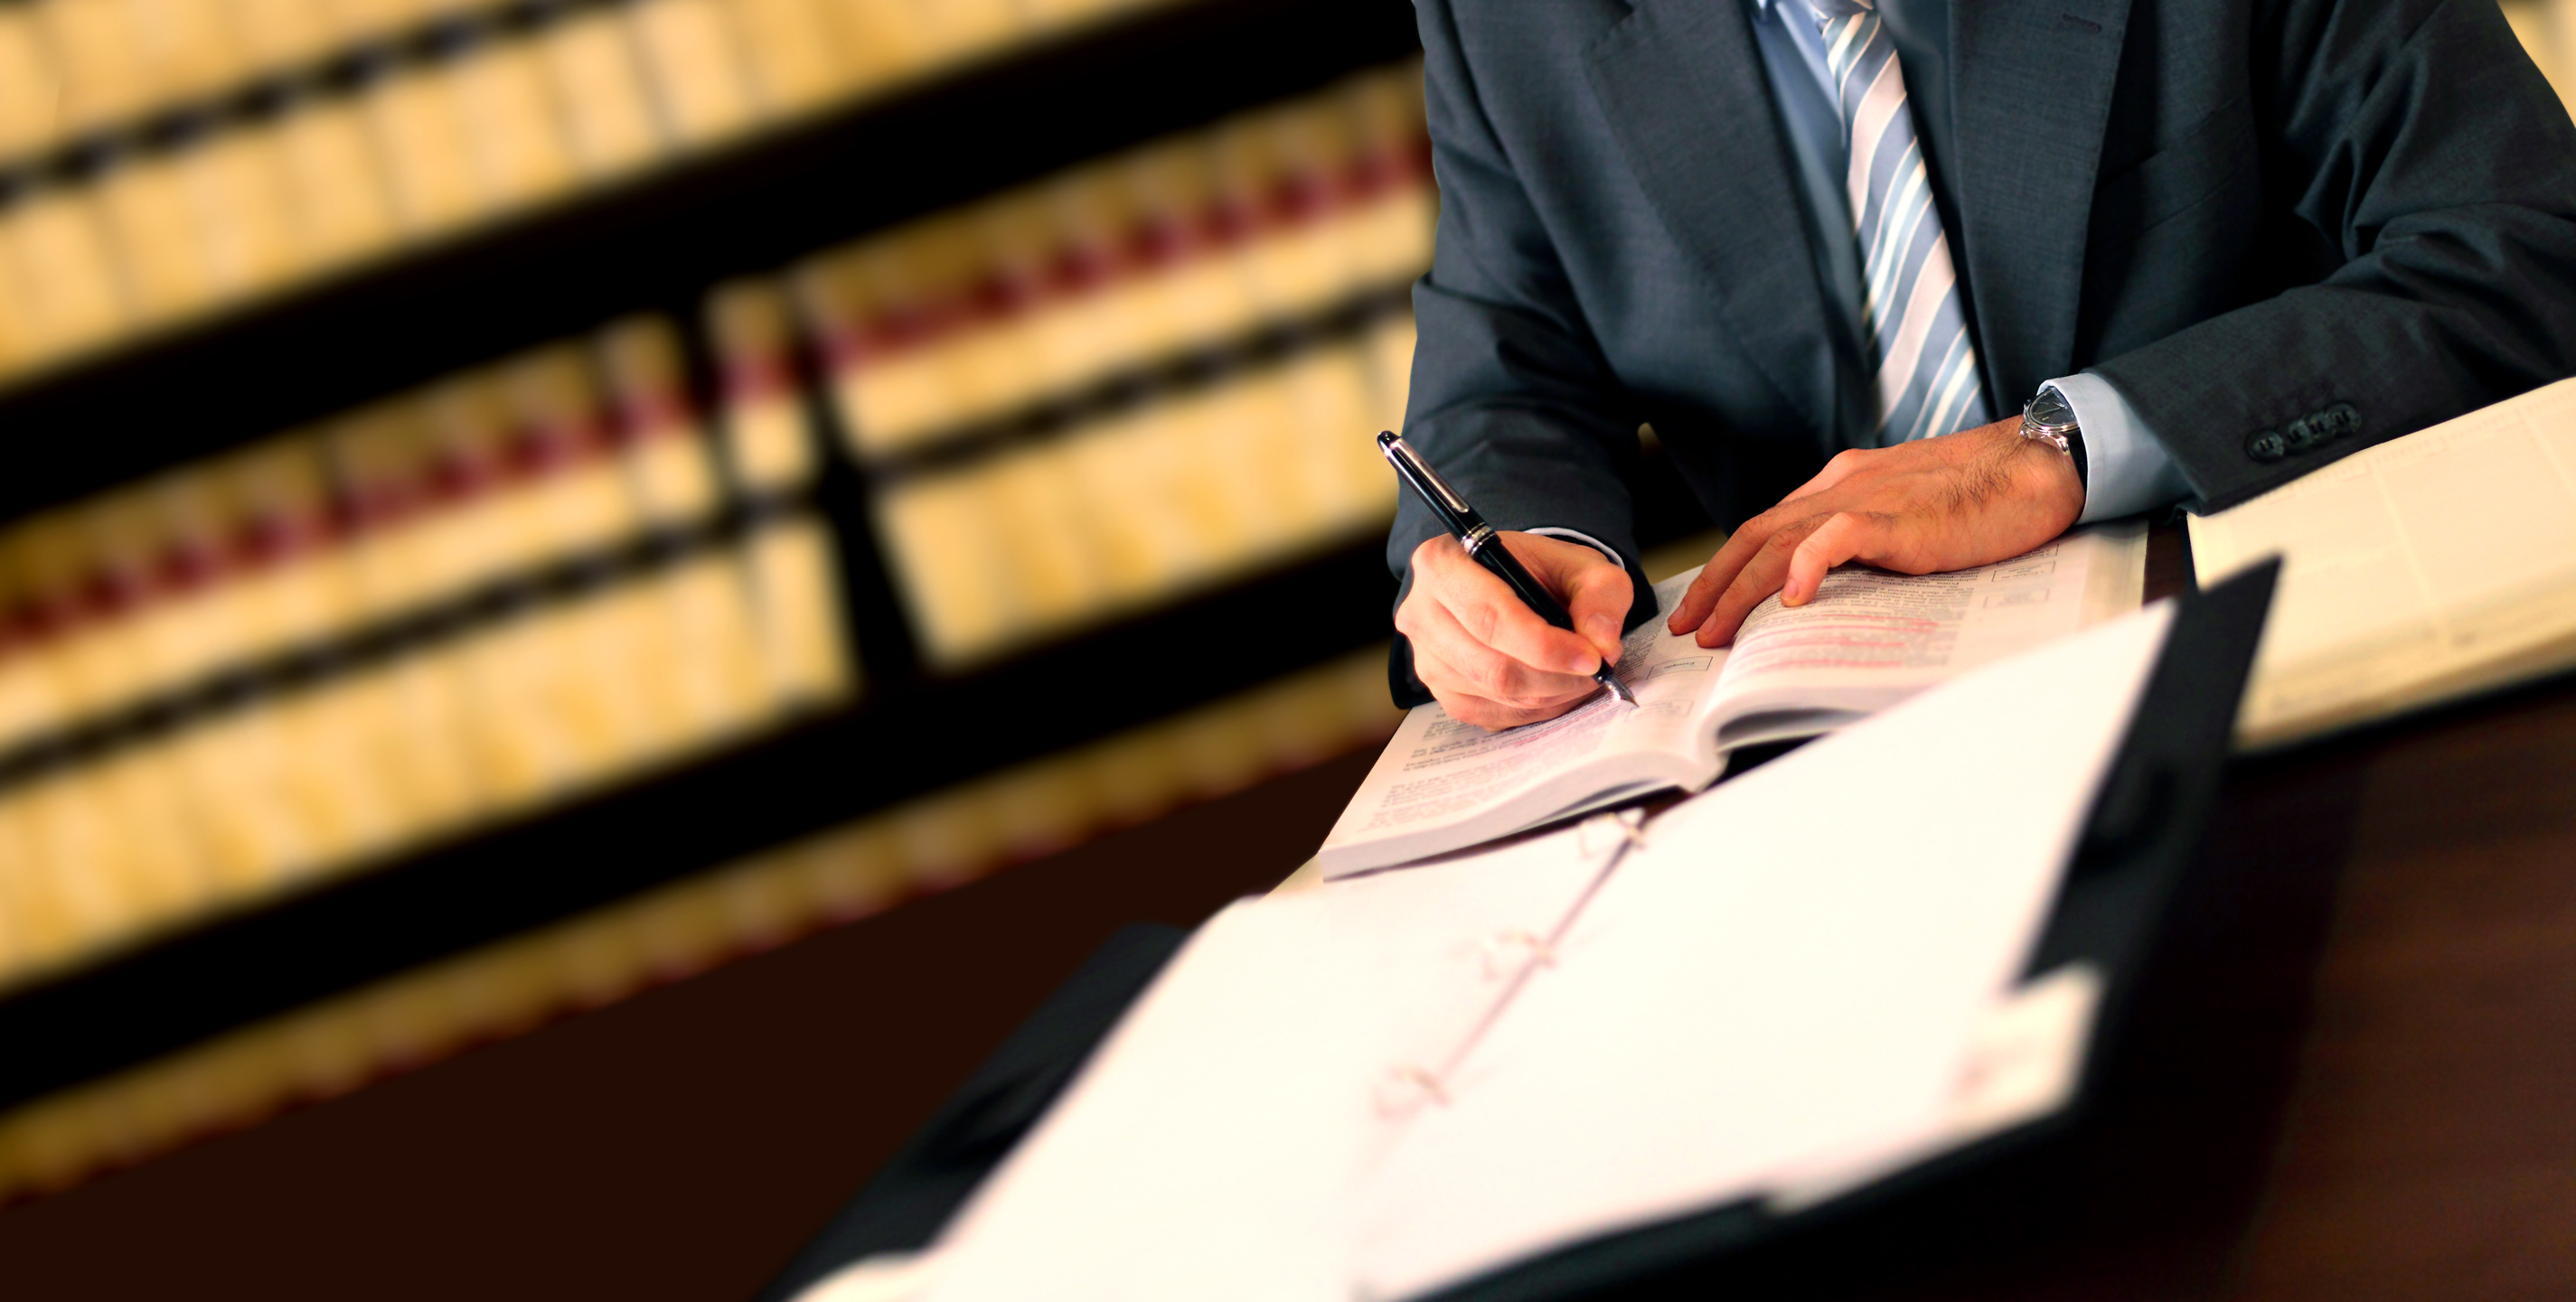 Lawyer - NJ Appellate Court Approves Disclosure of Confidential Witness Information